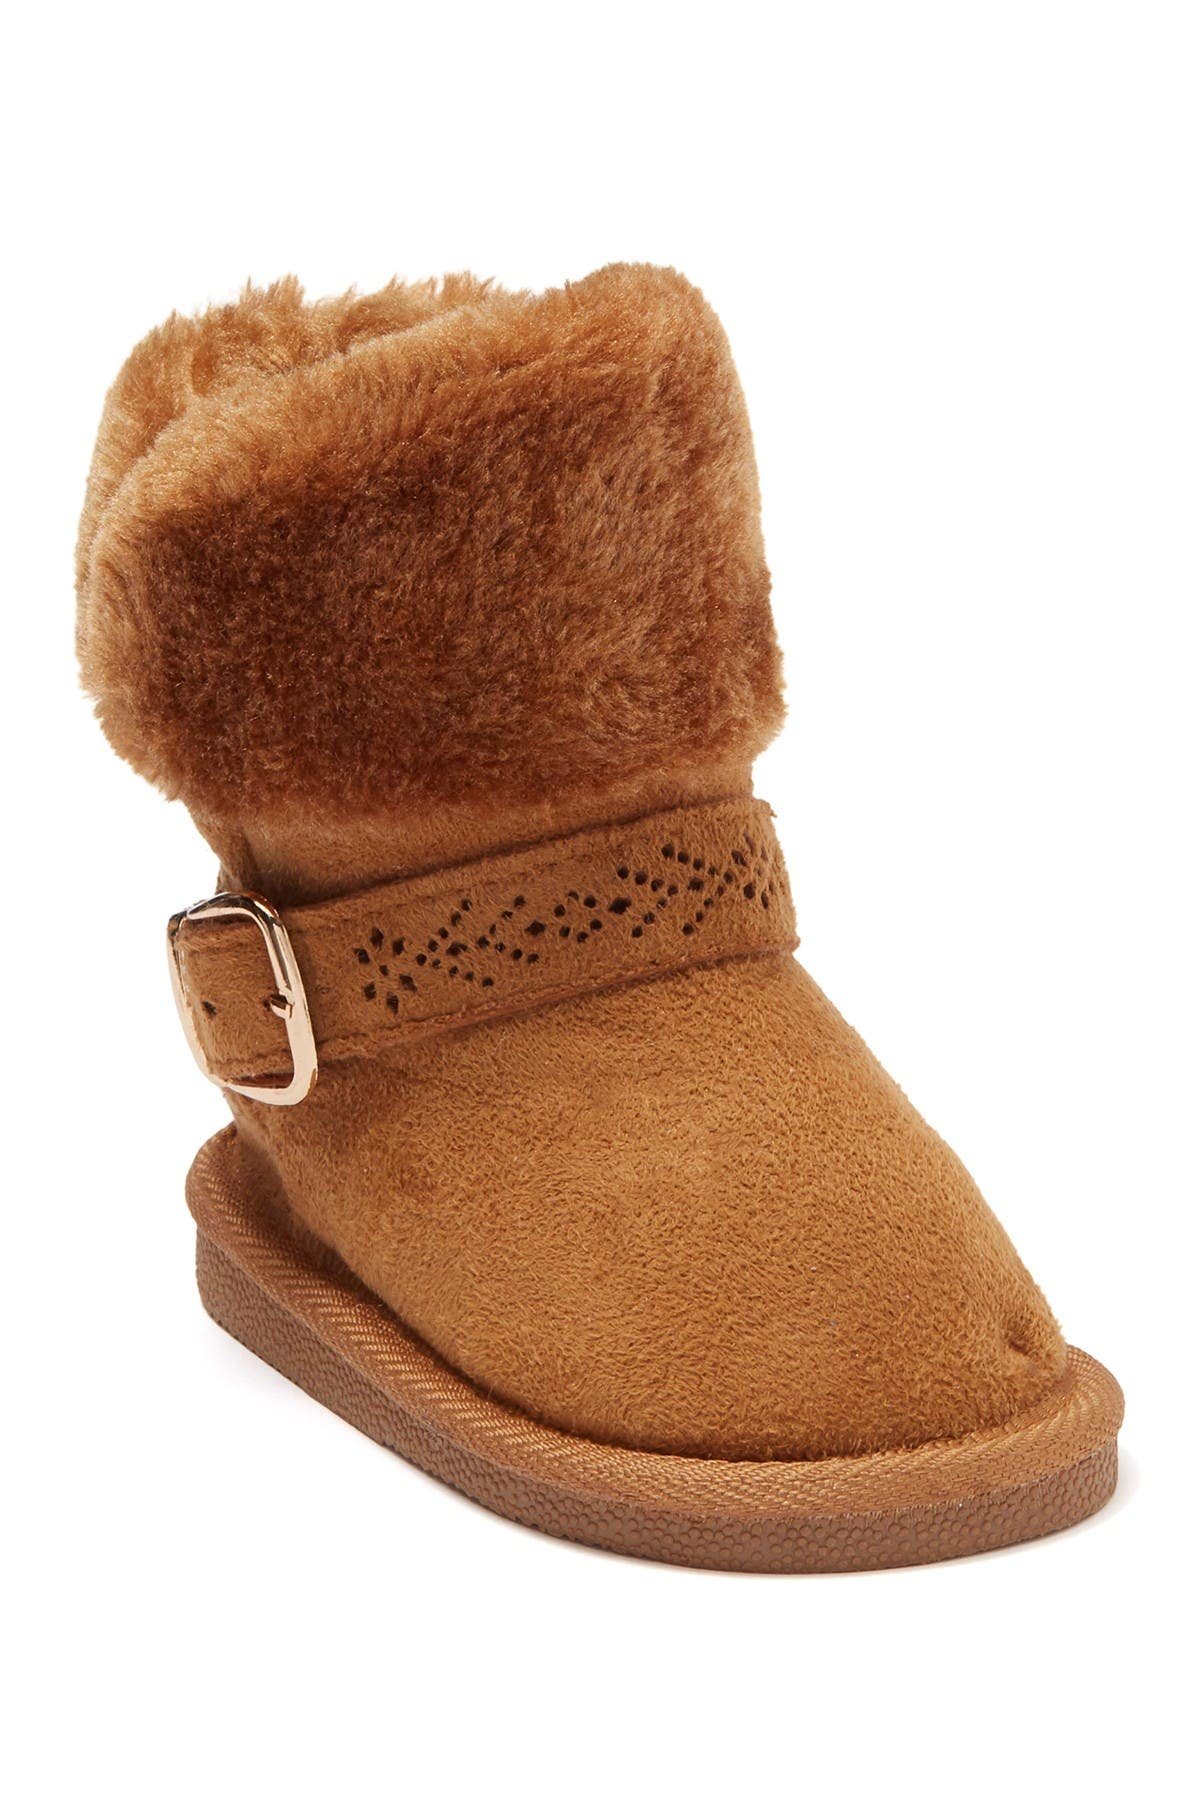 Image of bebe Faux Fur Lined Buckle Accent Winter Boot